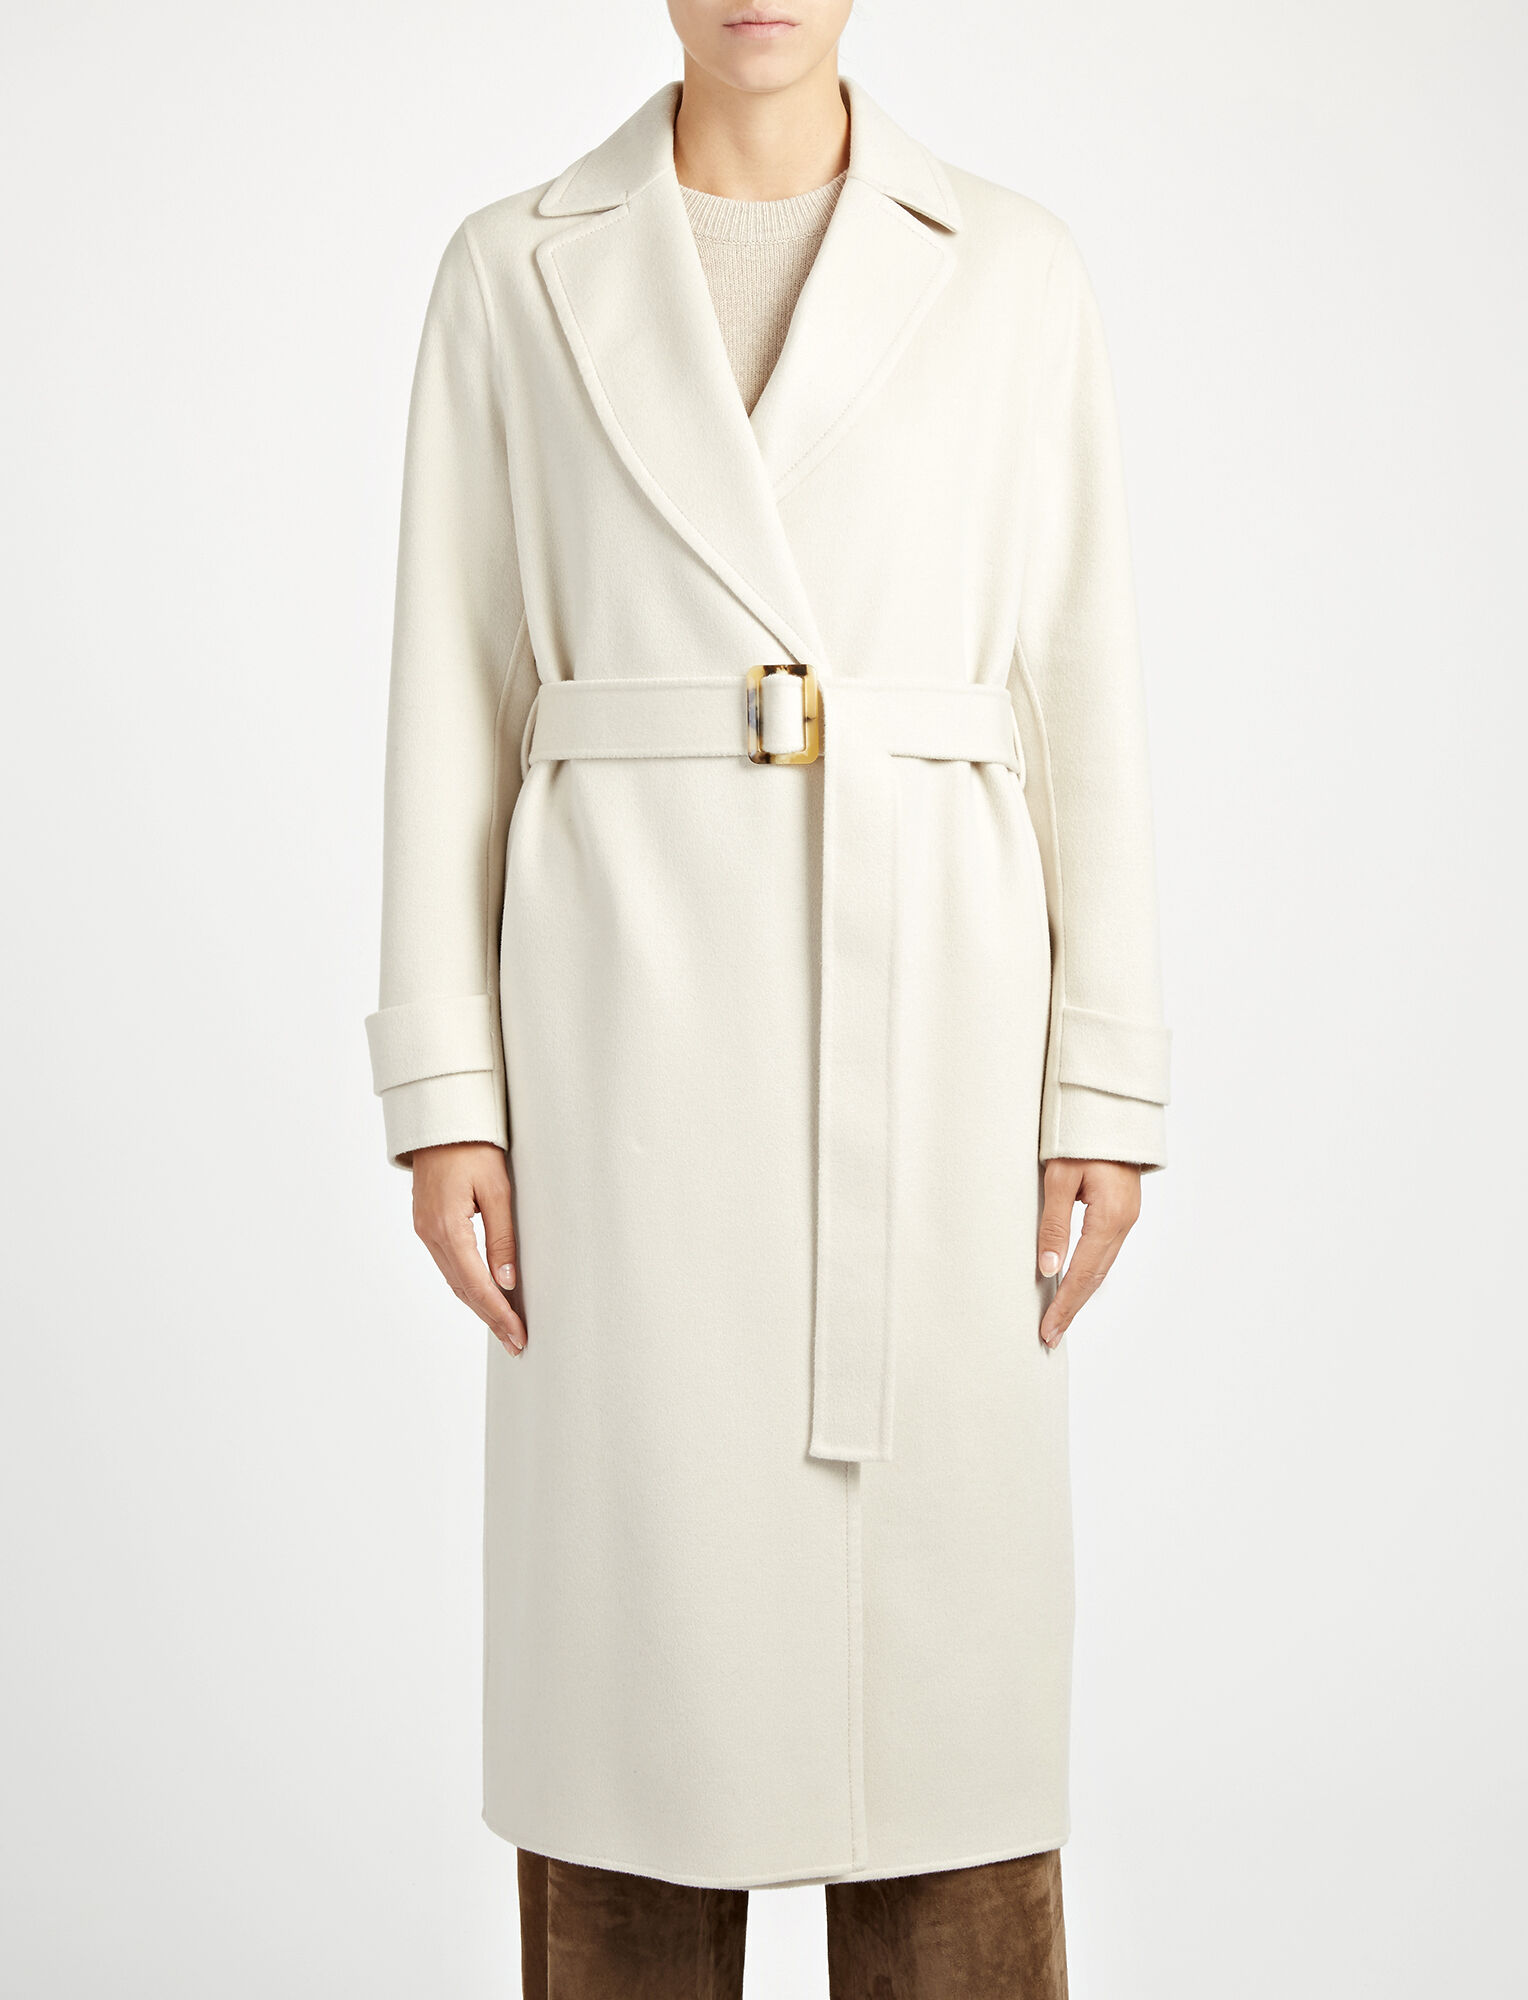 Joseph, Double Face Cashmere Dale Coat, in BONE